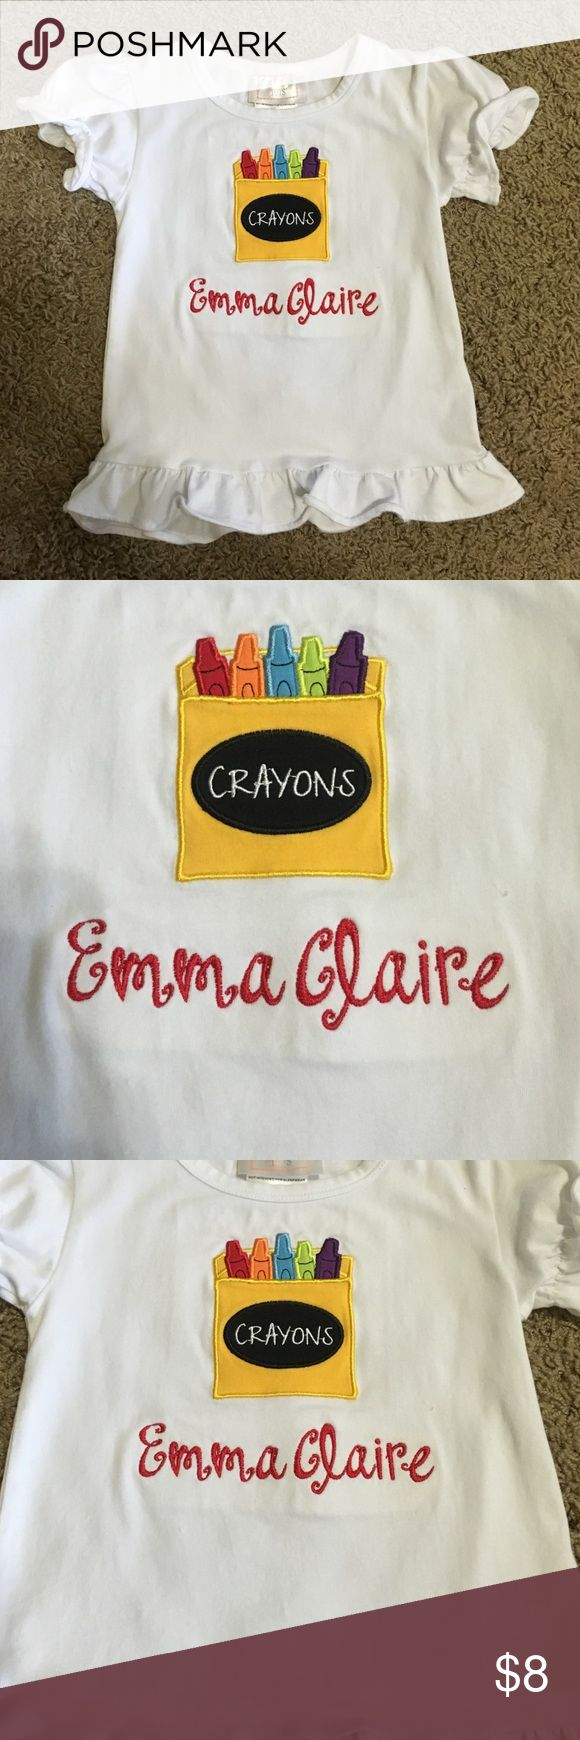 Darling back to school shirt! Precious back to school shirt. Has an appliqué of a box of crayons with the monogrammed name Emma Claire. Great condition! Southern Tots Shirts & Tops Tees - Short Sleeve